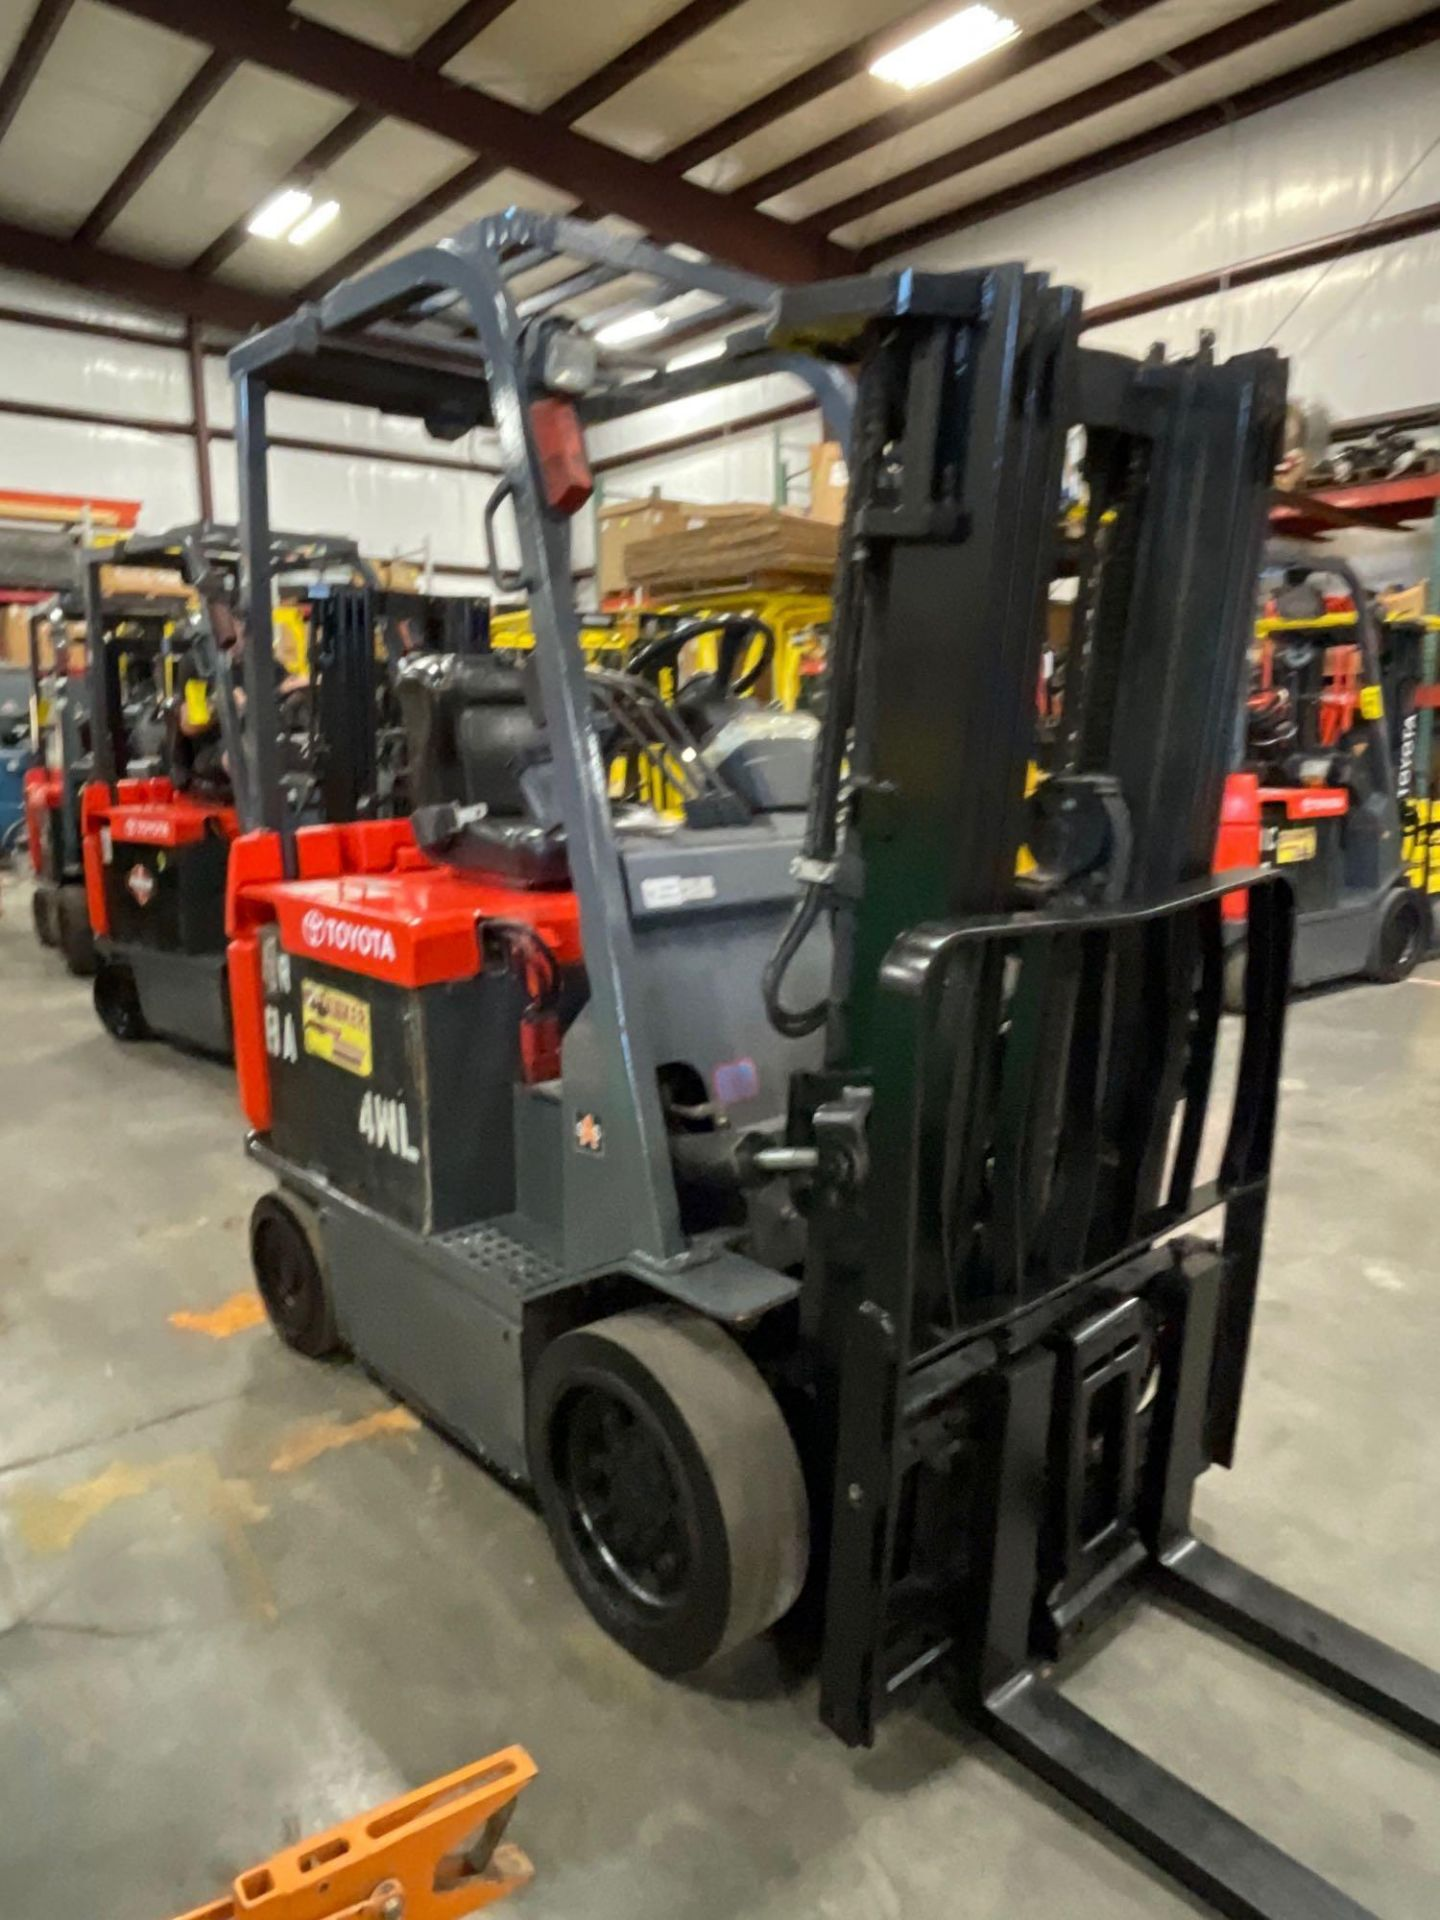 """TOYOTA 7FBCU25 ELECTRIC FORKLIFT, 5,000 LB CAPACITY, 170.5"""" HEIGHT CAPACITY, TILT, SIDE SHIFT - Image 4 of 16"""